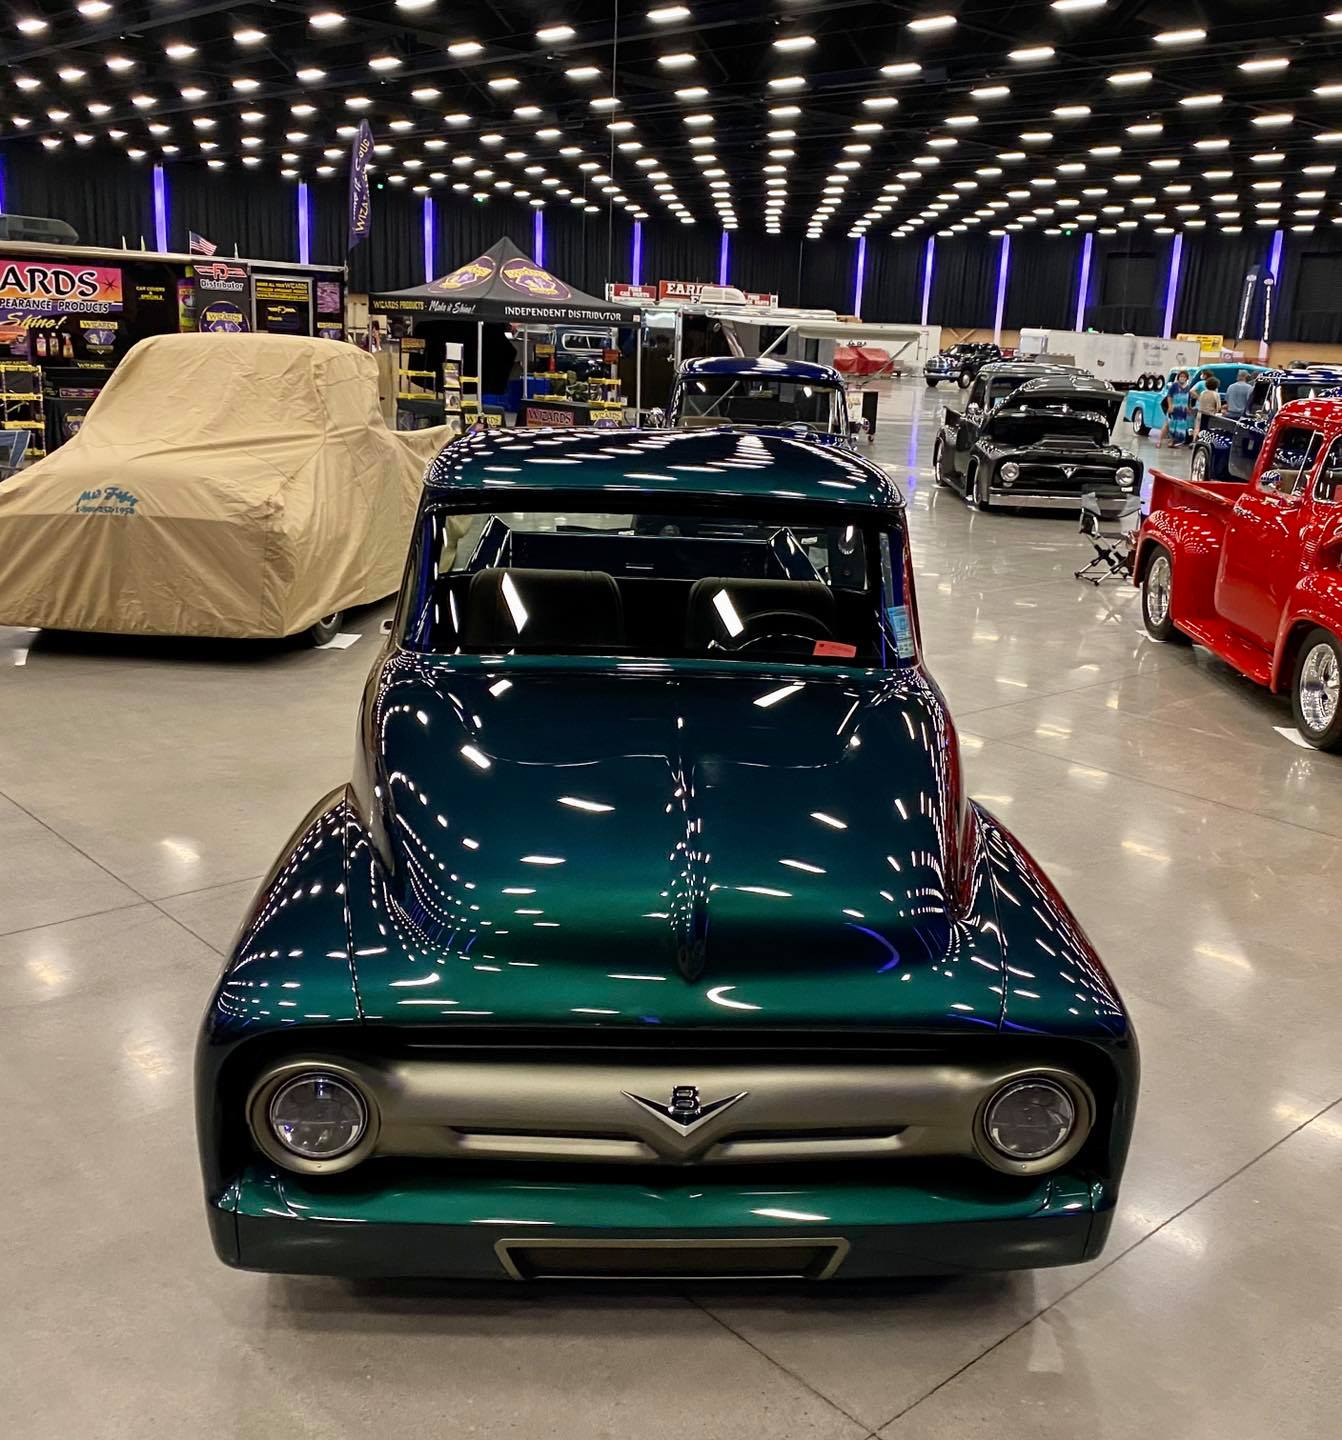 1956 Ford F100 Coyote Swapped Wins Truck of the Year 5.jpg